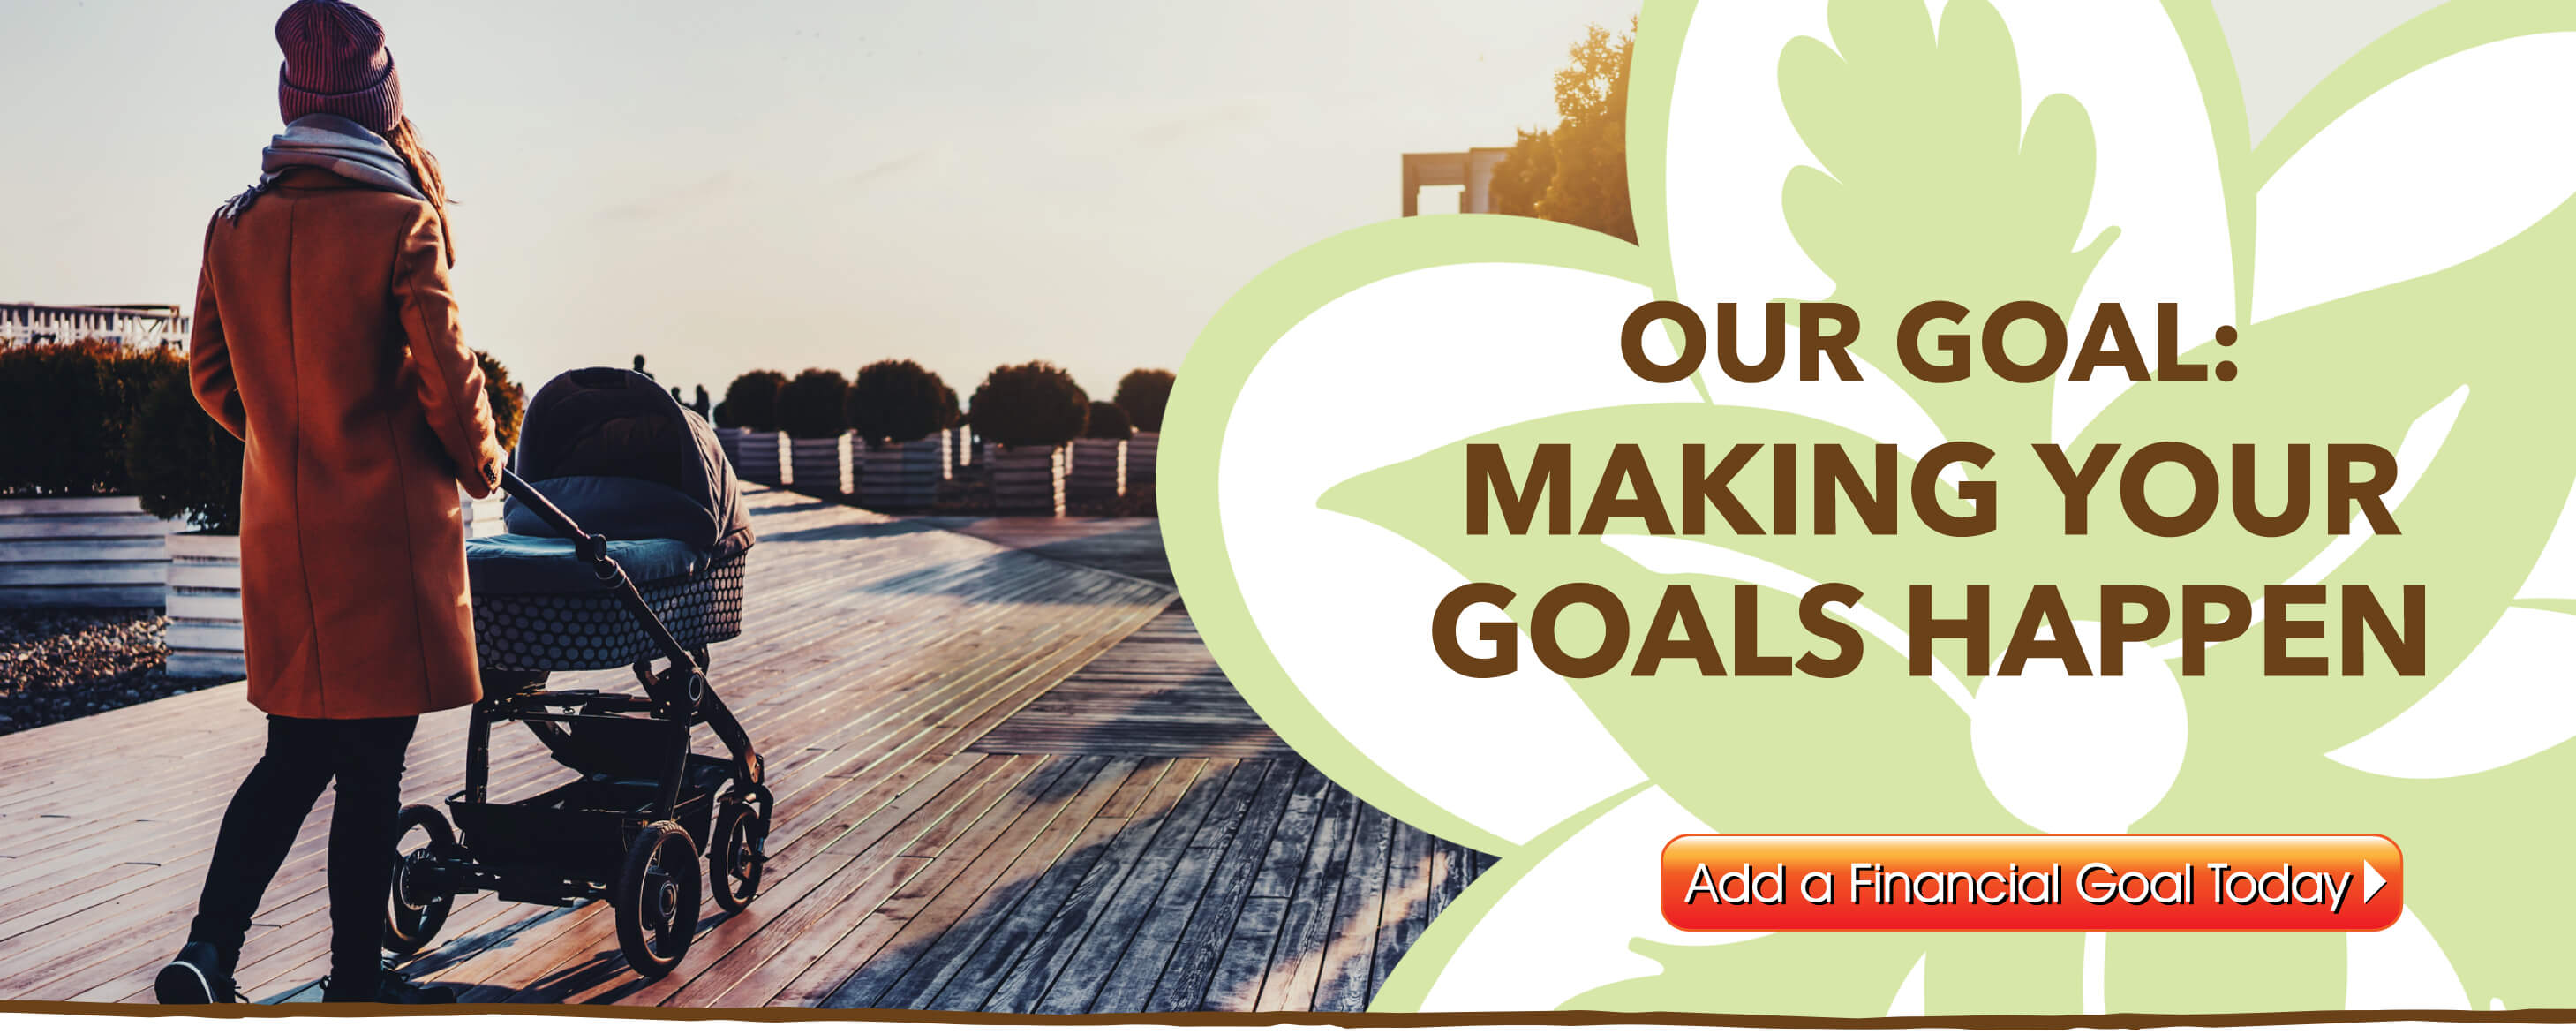 Our Goal:  Making your goals happen!  Add a financial goal today in MyFinancial.